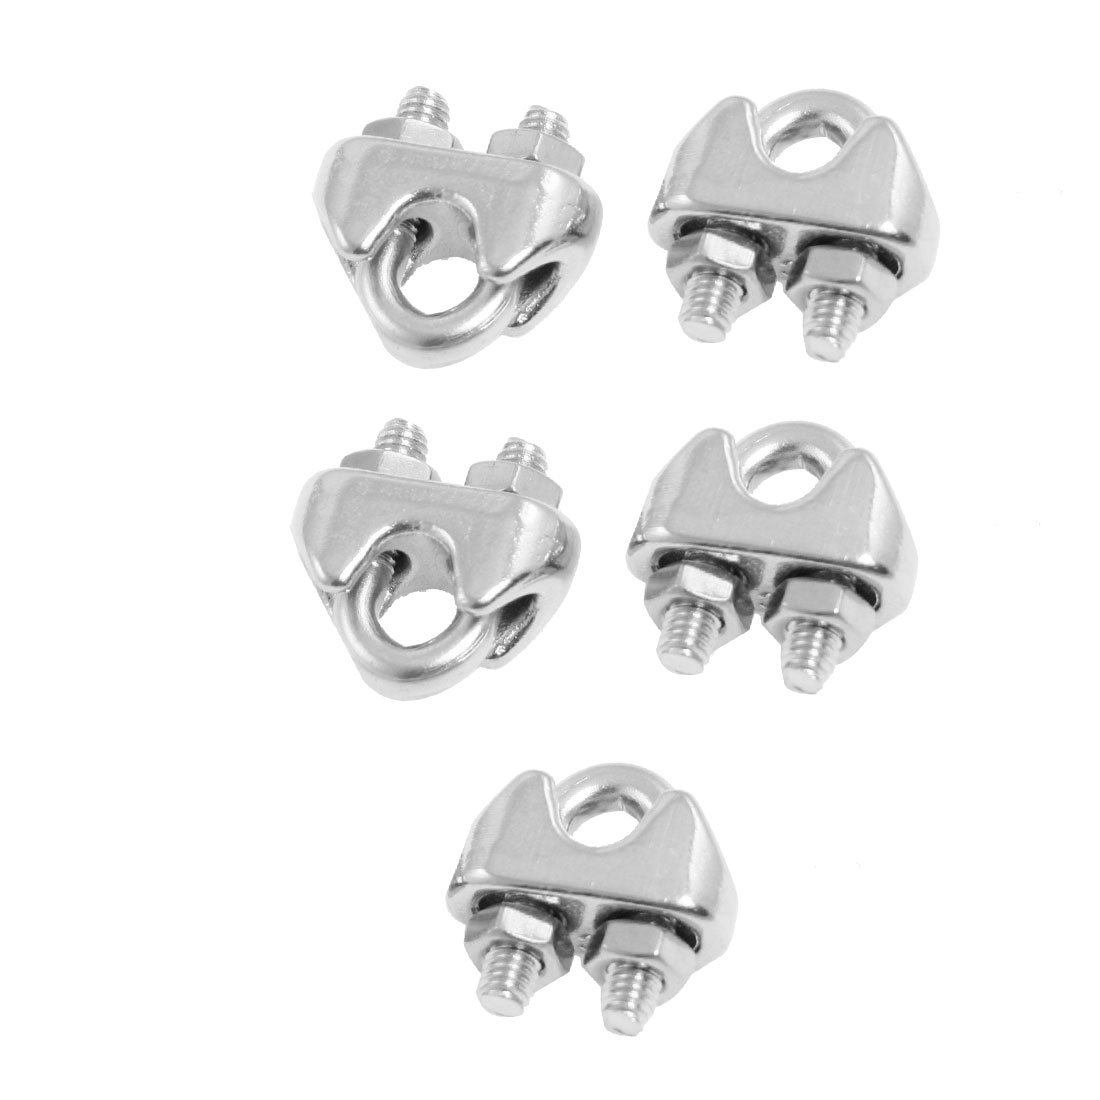 10 Pieces of Duplex 304 Stainless Steel Wire Rope Clip Cable clamp Suit for 1.5mm-2mm Rope